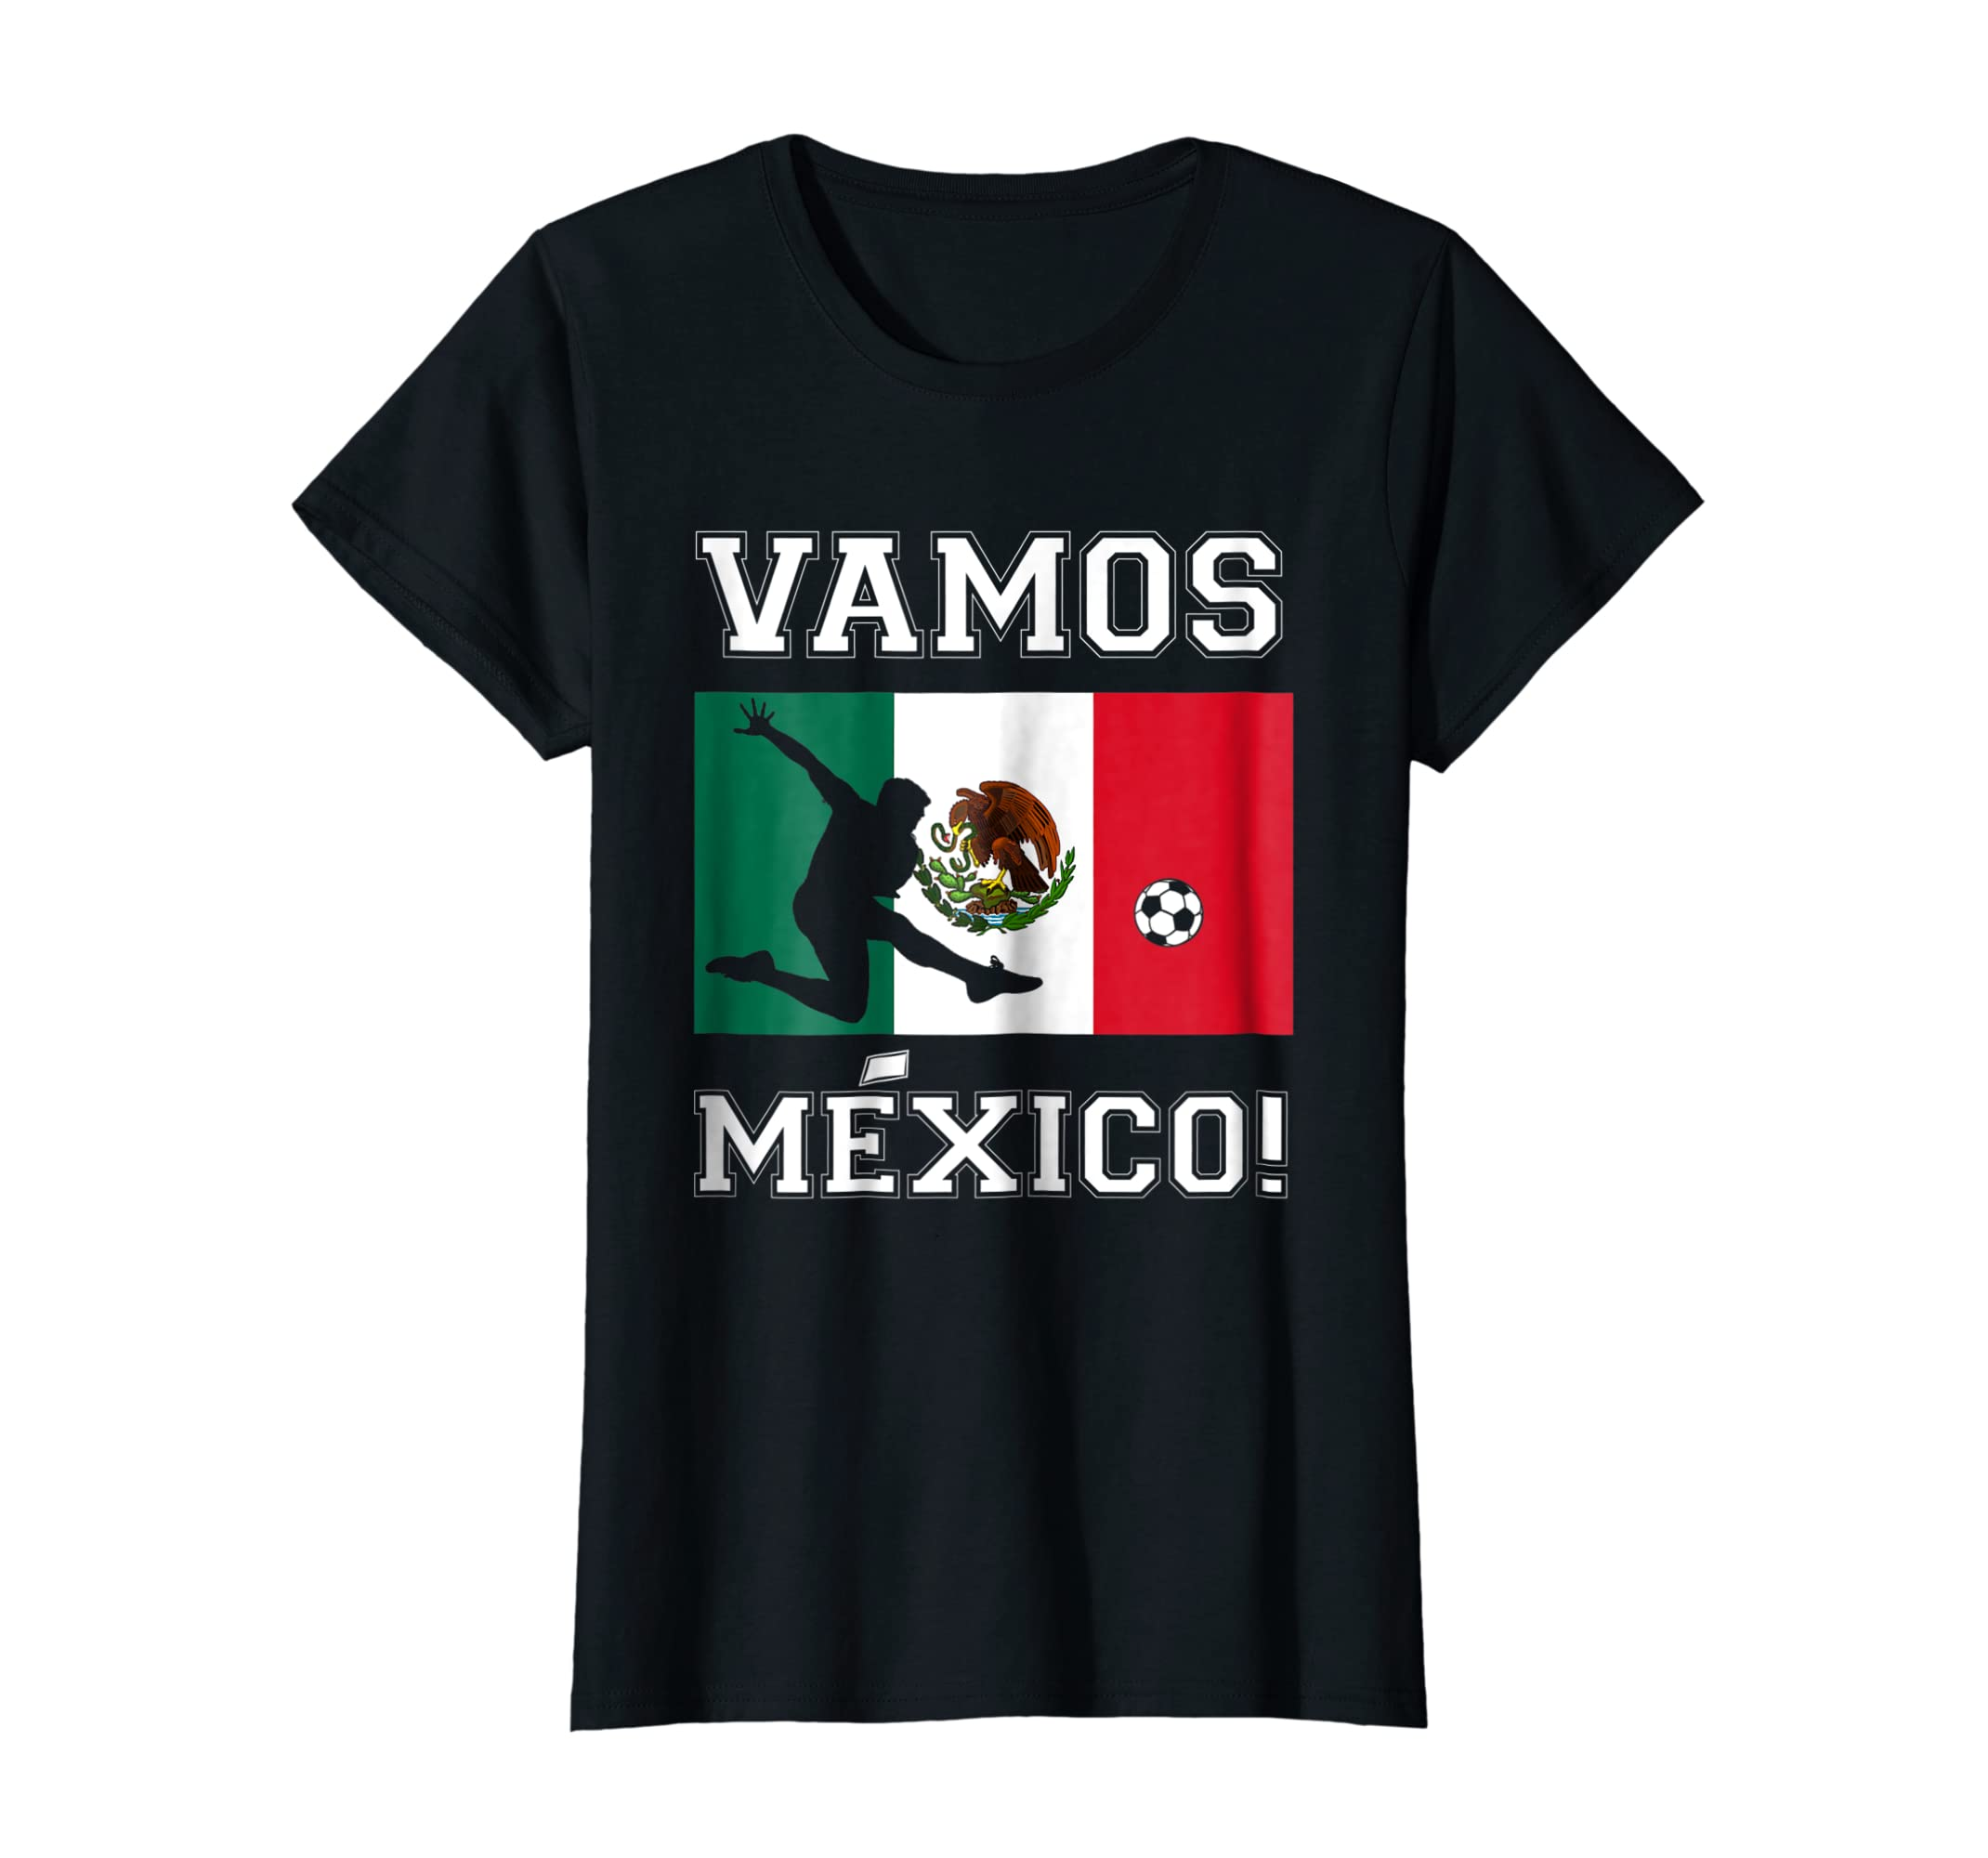 Amazon.com: Camiseta de Mexico Futbol Mundial Rusia Seleccion Mexicana: Clothing